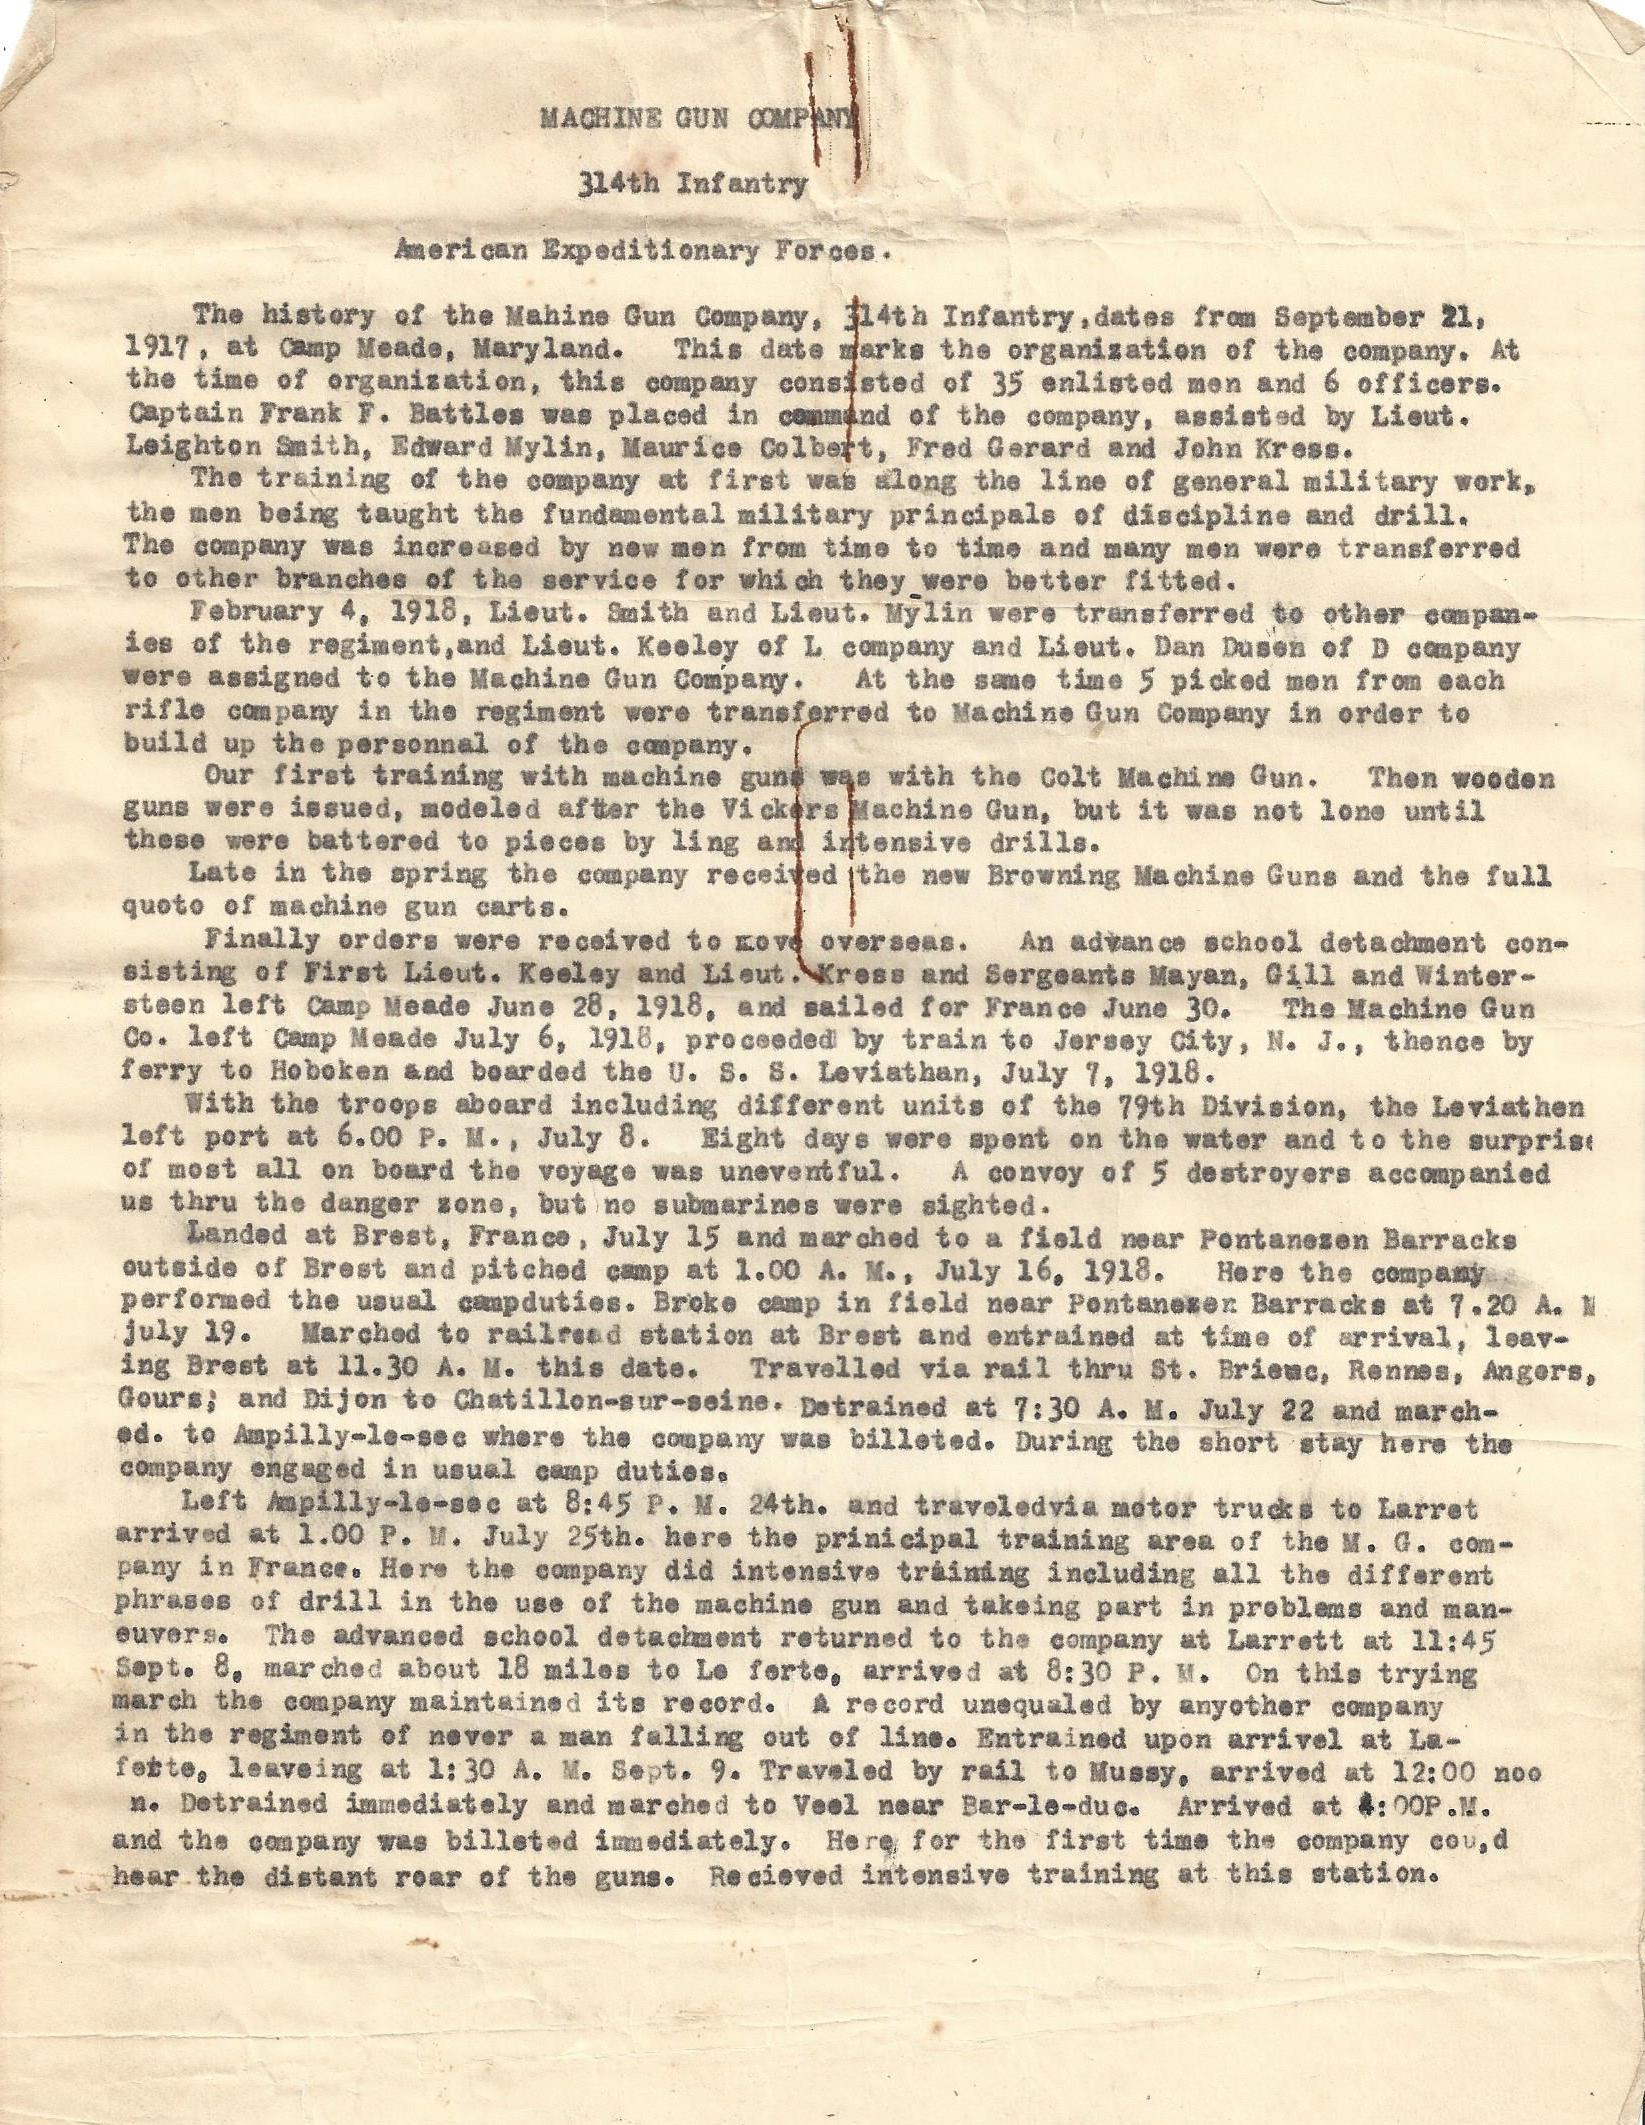 MG Company 314th Infantry AEF typewritten history page 1